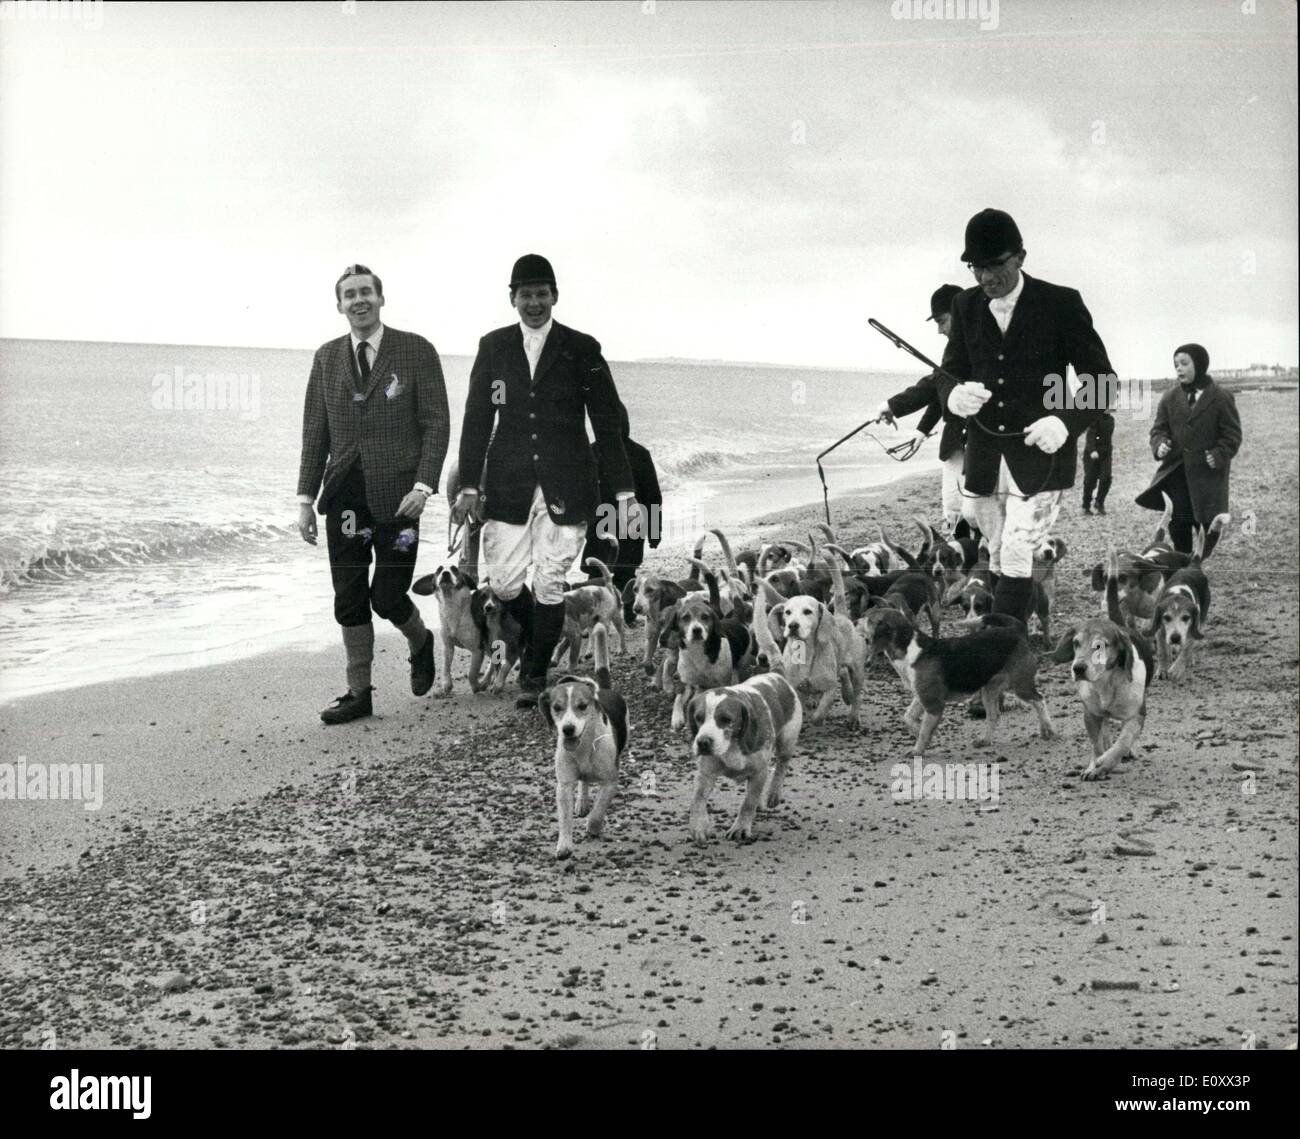 Dec. 27, 1967 - Boxing day meet on the beach ? Only one boxing day meet was held in England, on the beach at Felixstowe. Elsewhere, foot and mouth precaution kept the hounds in their kennels. But no one objected to the Sproughton Foot Beagles having an outing on the shingle. Said the chairman of the beagles, who normally hunt hares on farmland near Ipawich: ?We are conscious of our responsibility and we asked permission from the Ministry of Agriculture, the National Farmers? Union and other bodies concerned - Stock Image